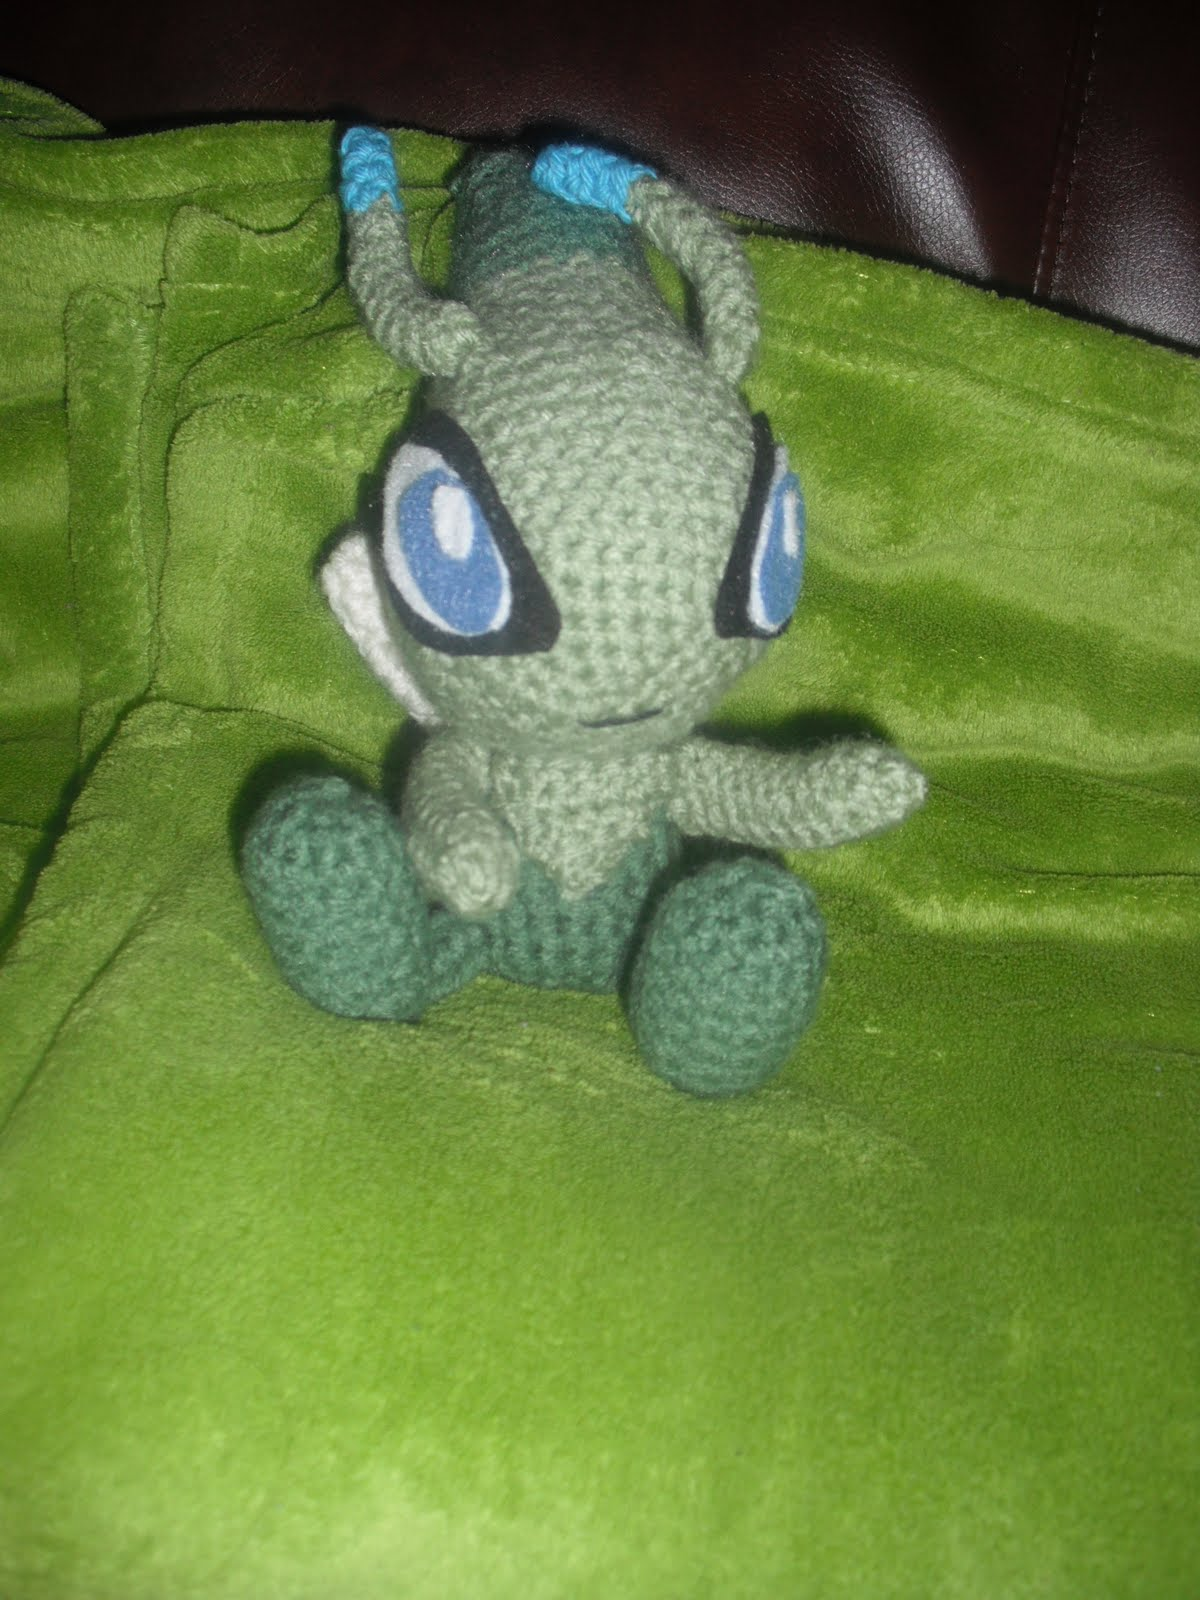 Crochet Patterns Pokemon : 2000 Free Amigurumi Patterns: Free Celebi PokEmon Crochet Pattern